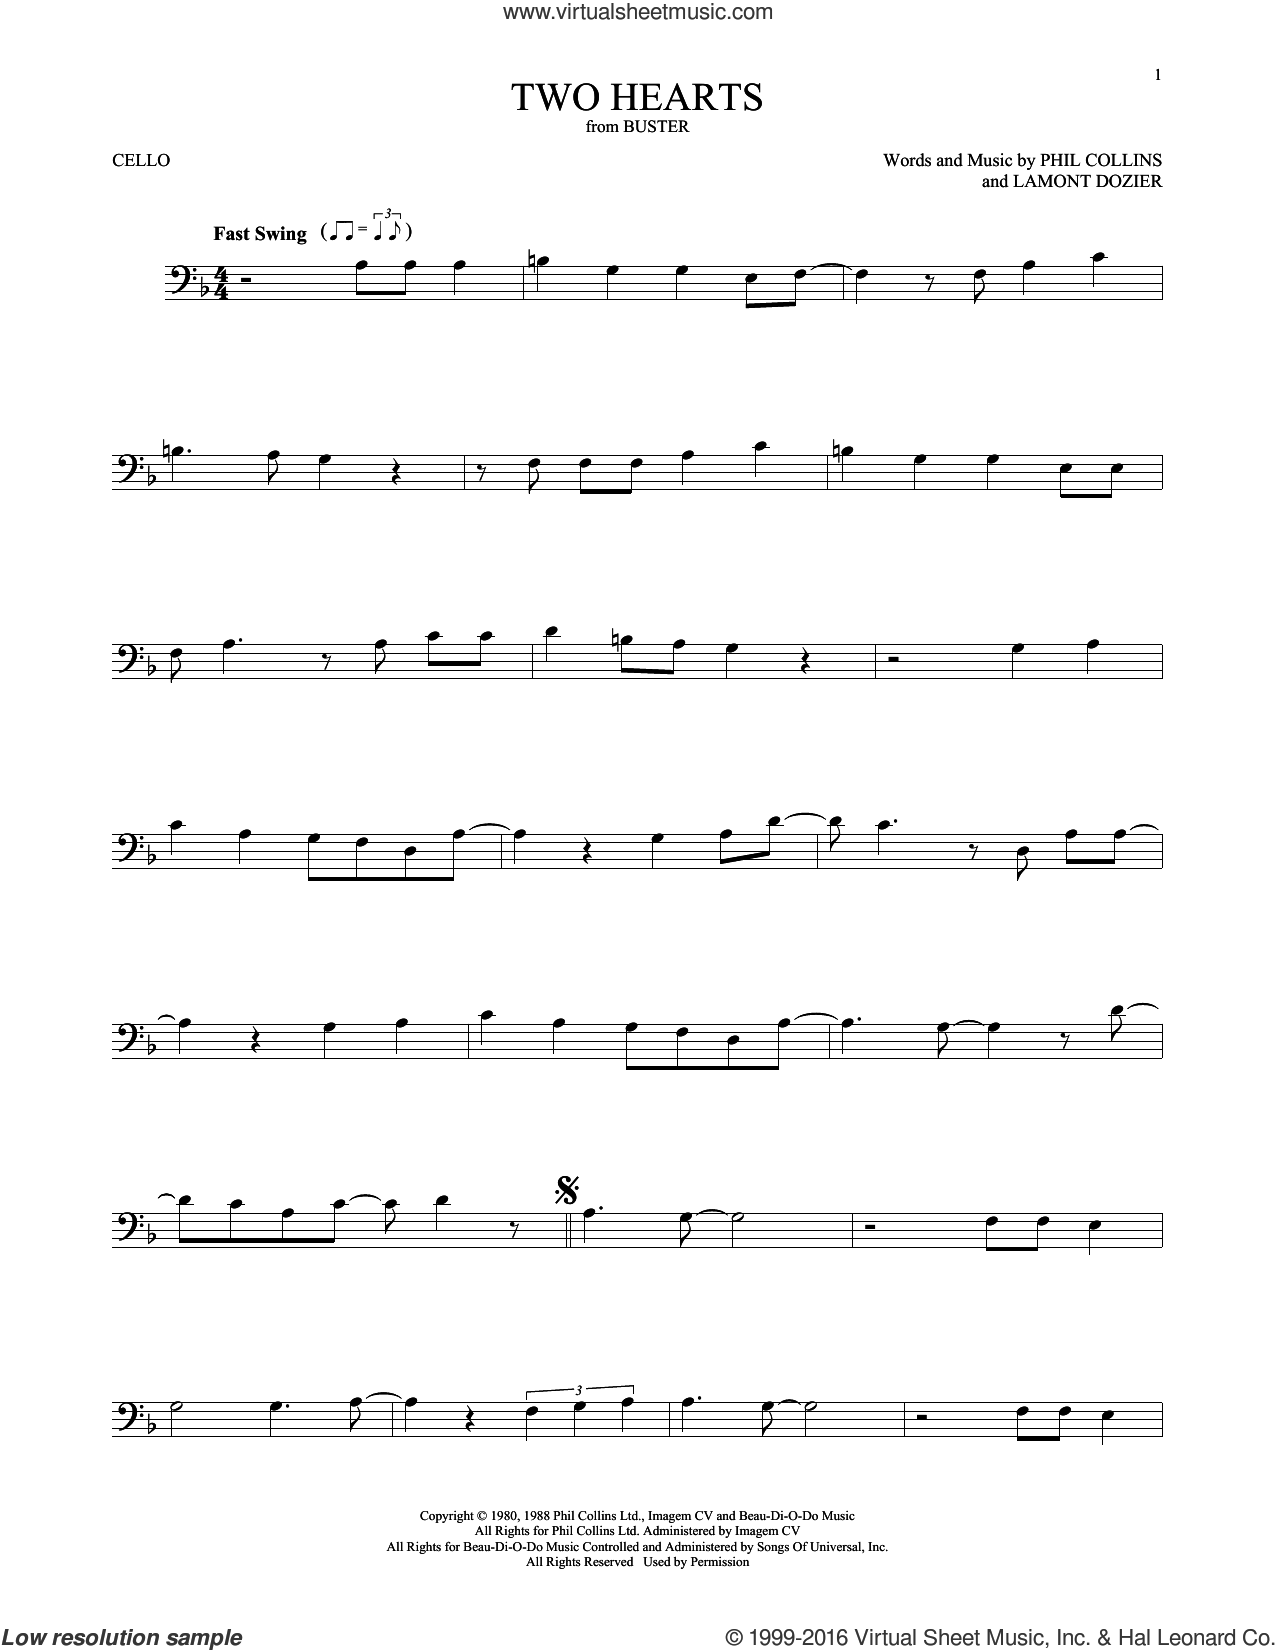 Two Hearts sheet music for cello solo by Phil Collins and Lamont Dozier, intermediate skill level